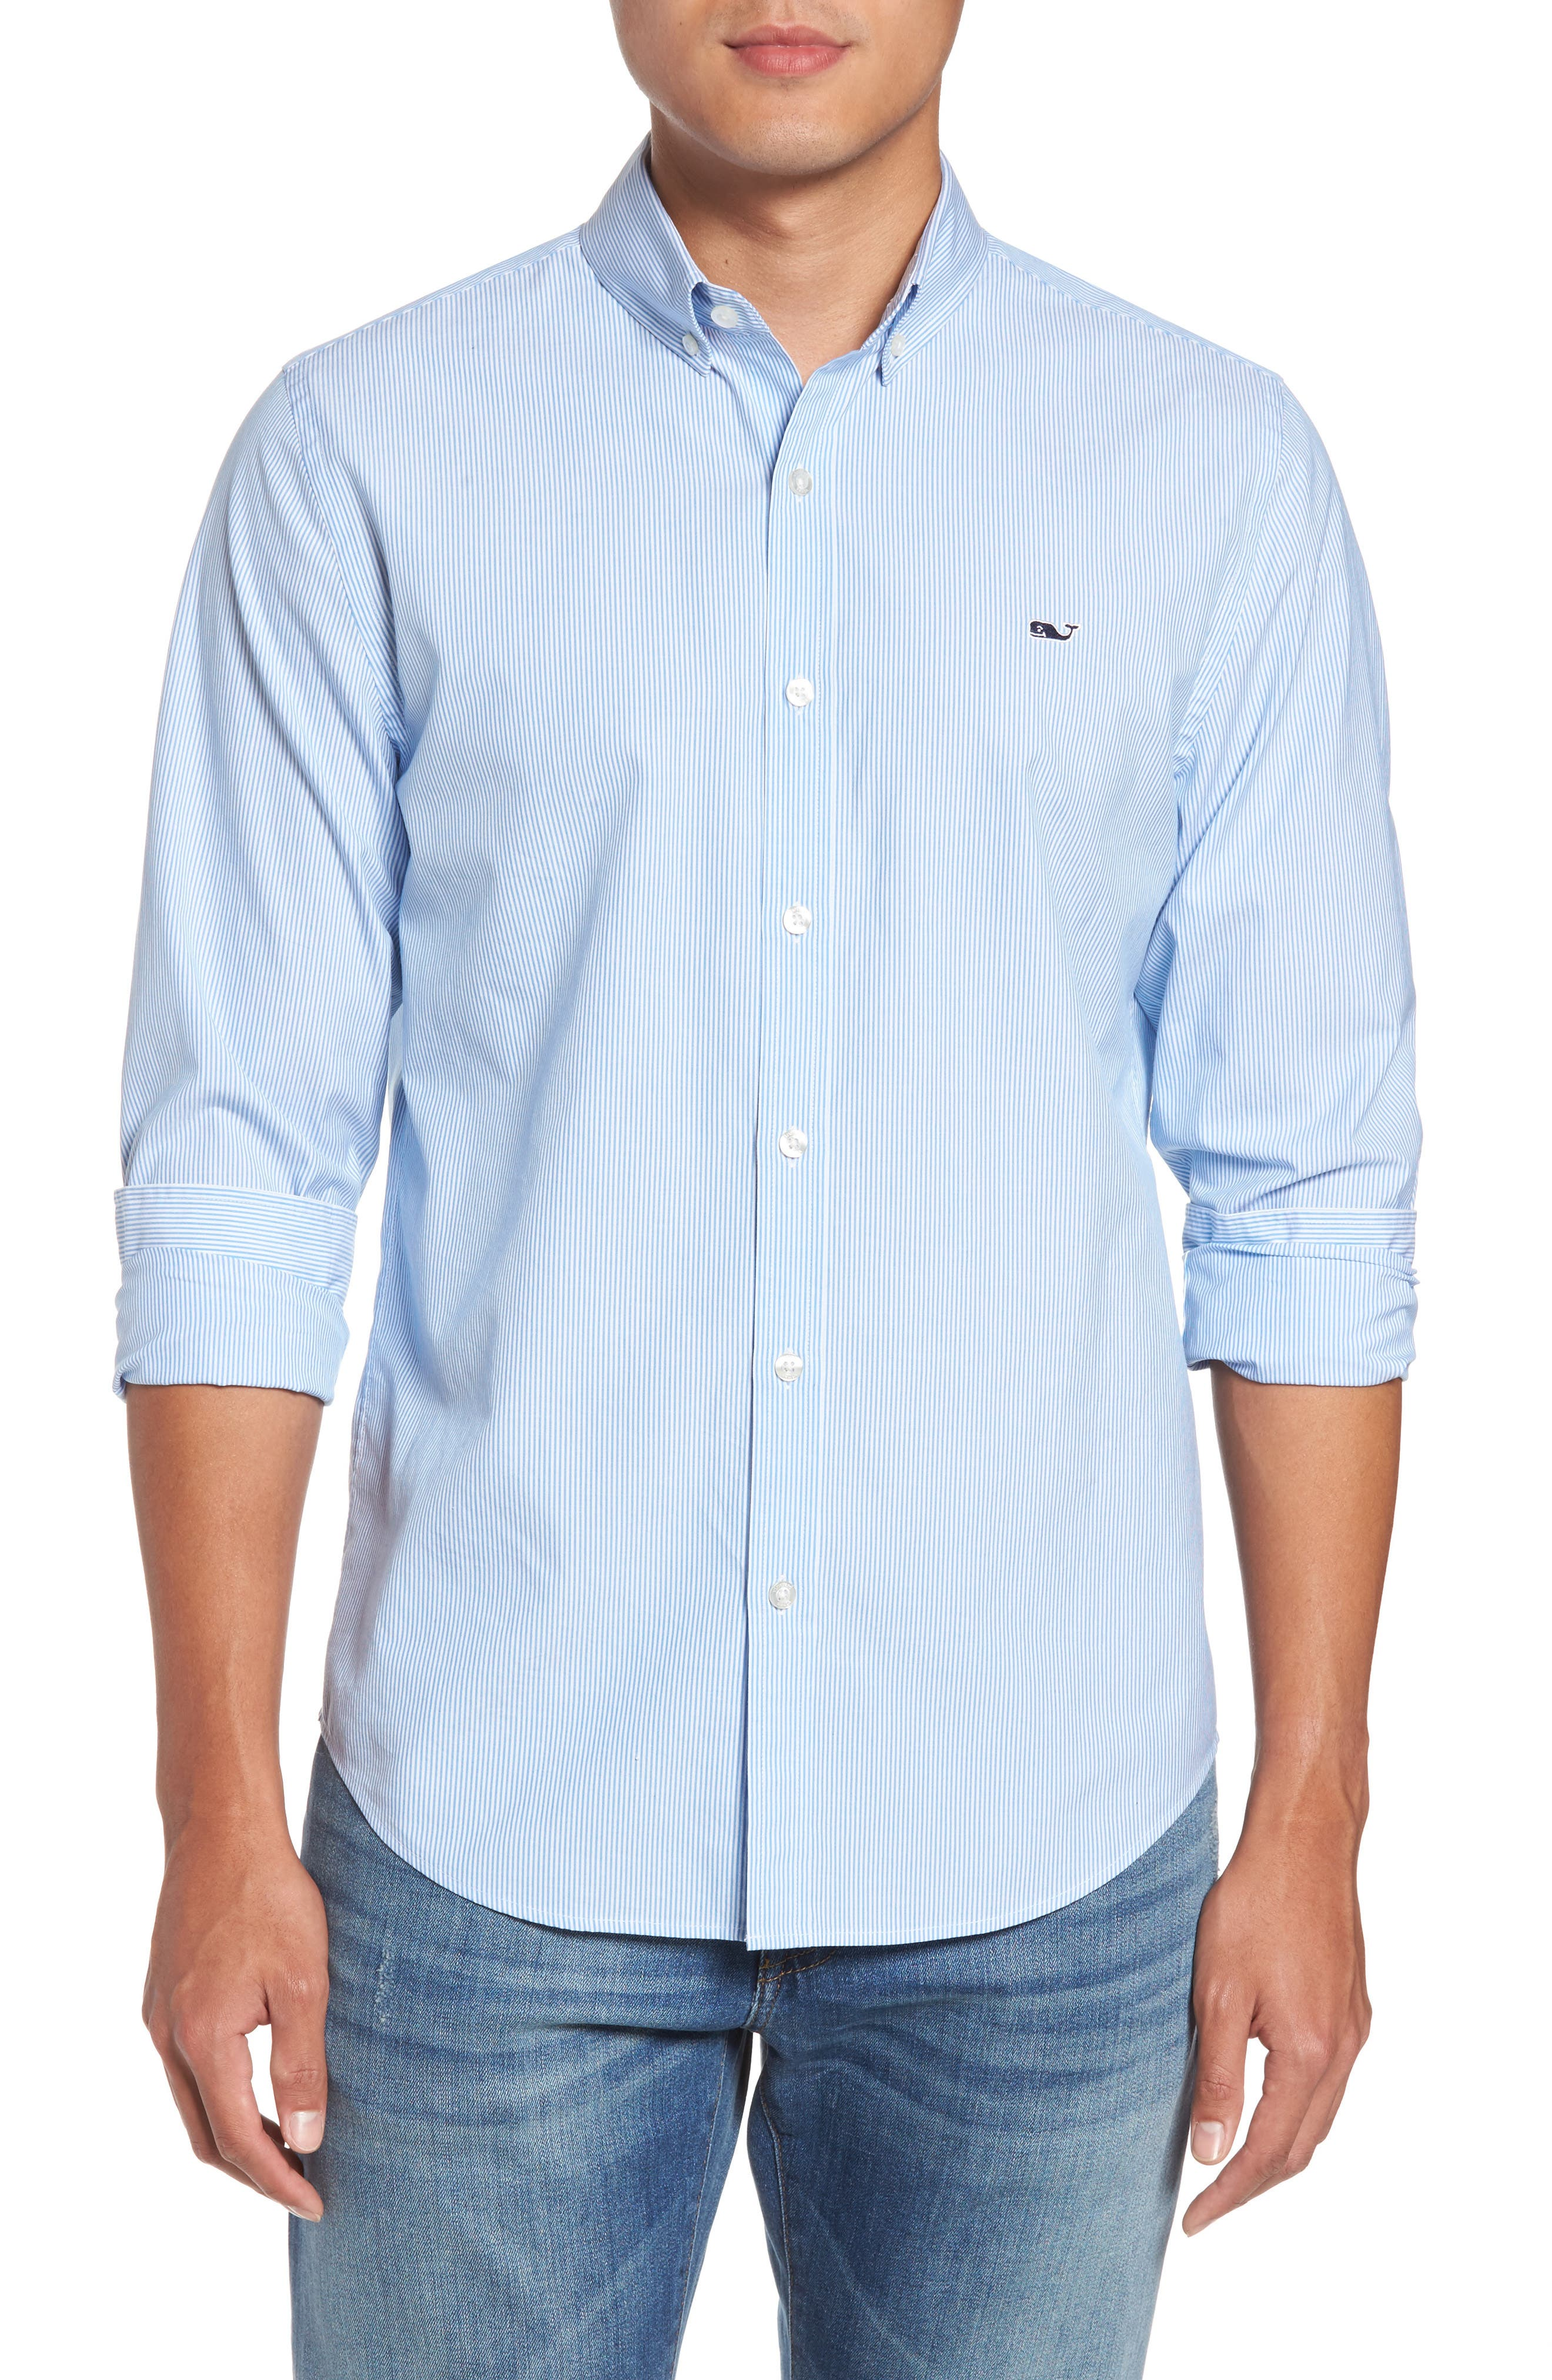 Vineyard Vines Classic Fit Stripe Sport Shirt